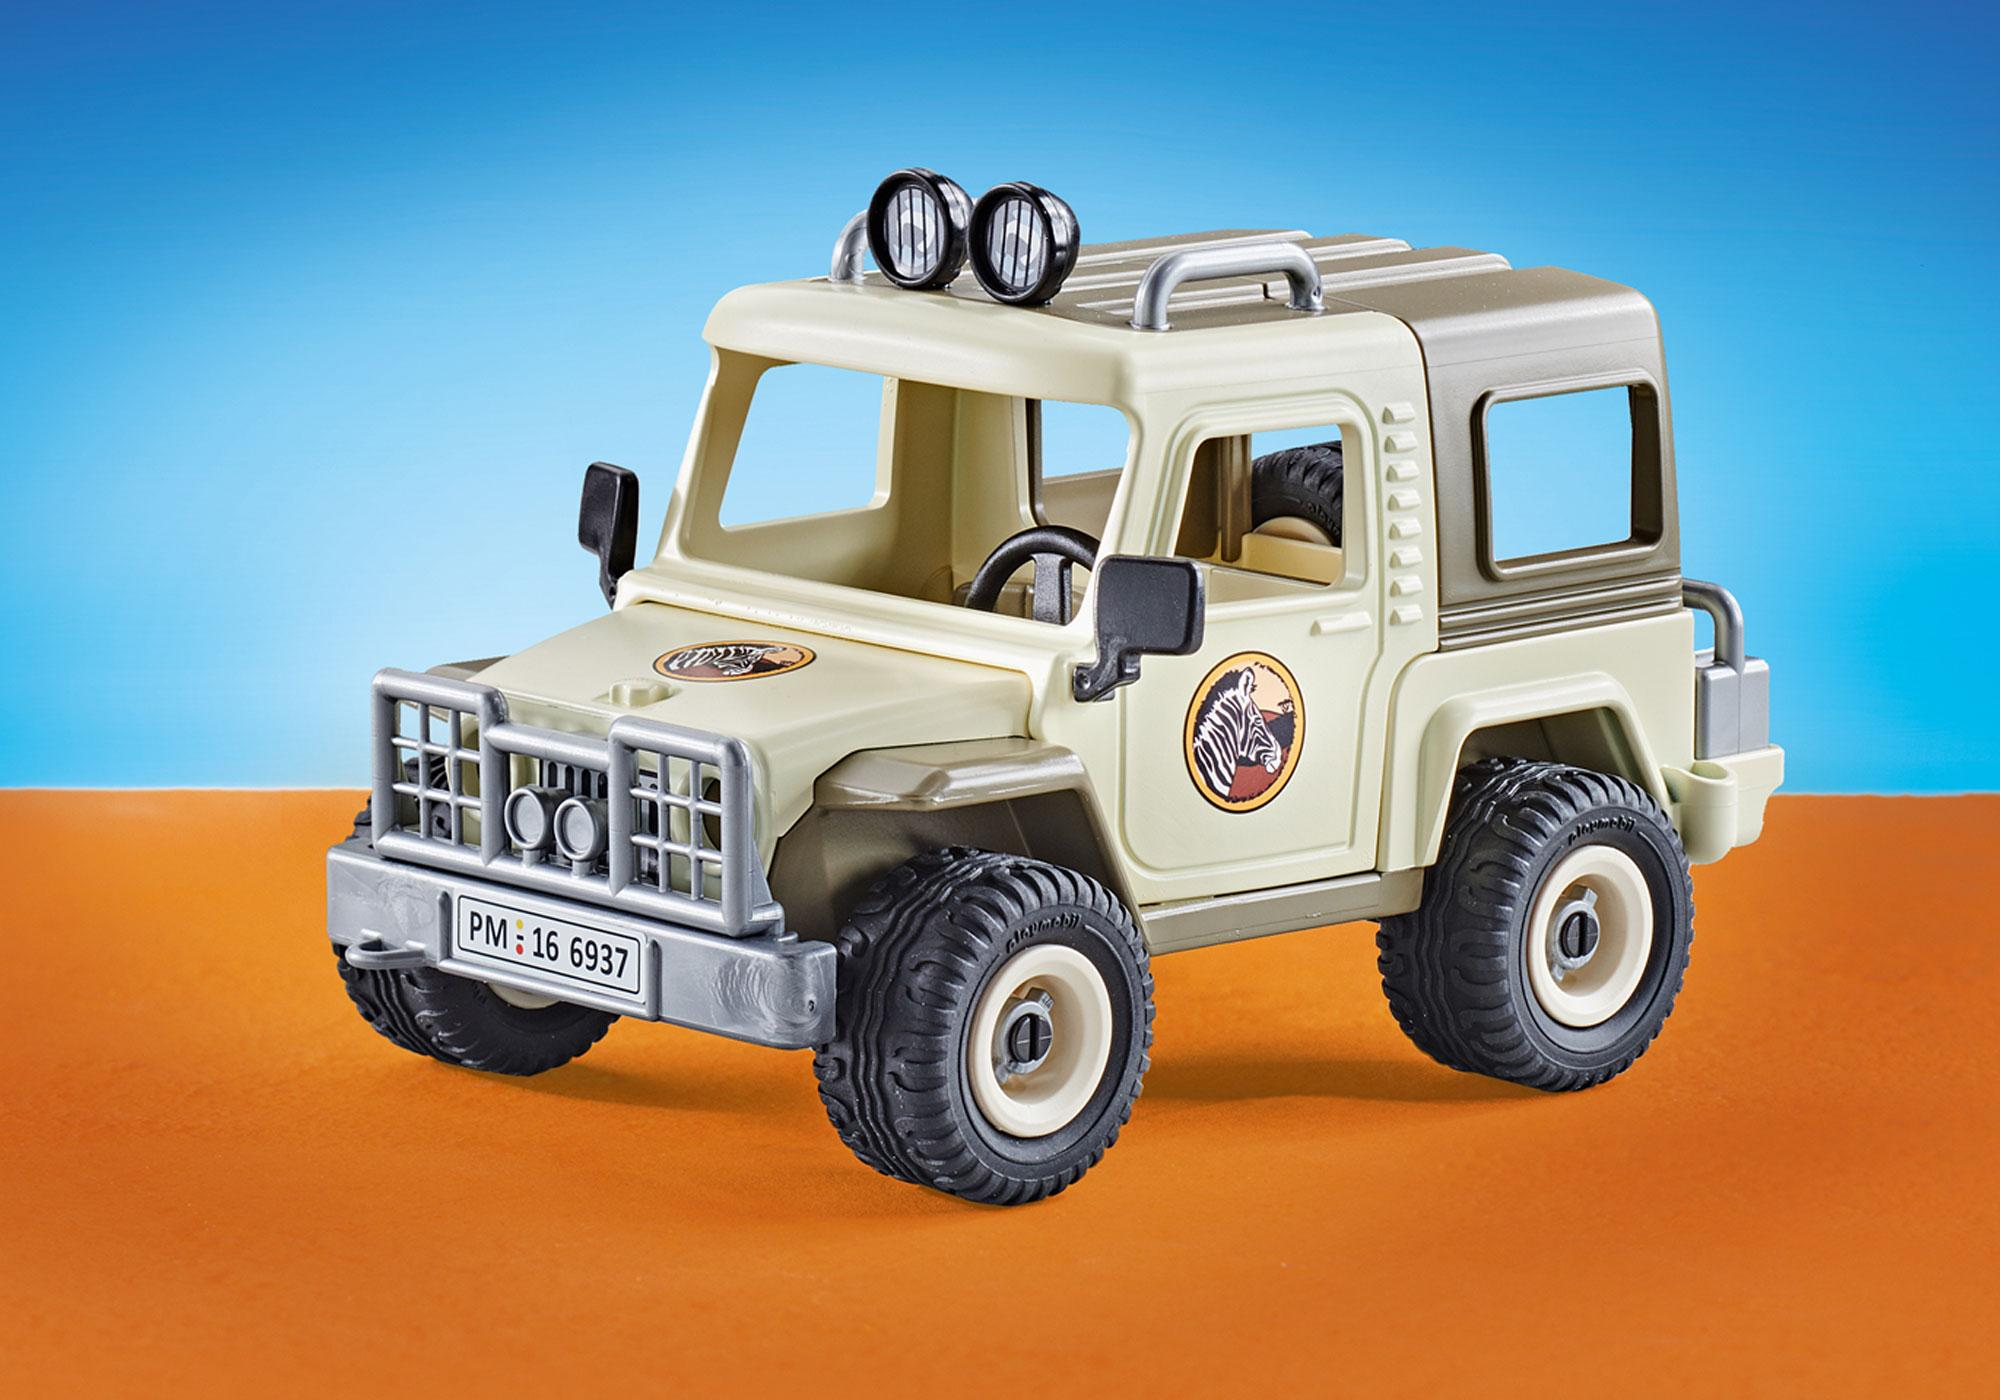 http://media.playmobil.com/i/playmobil/6581_product_detail/Pojazd terenowy safari